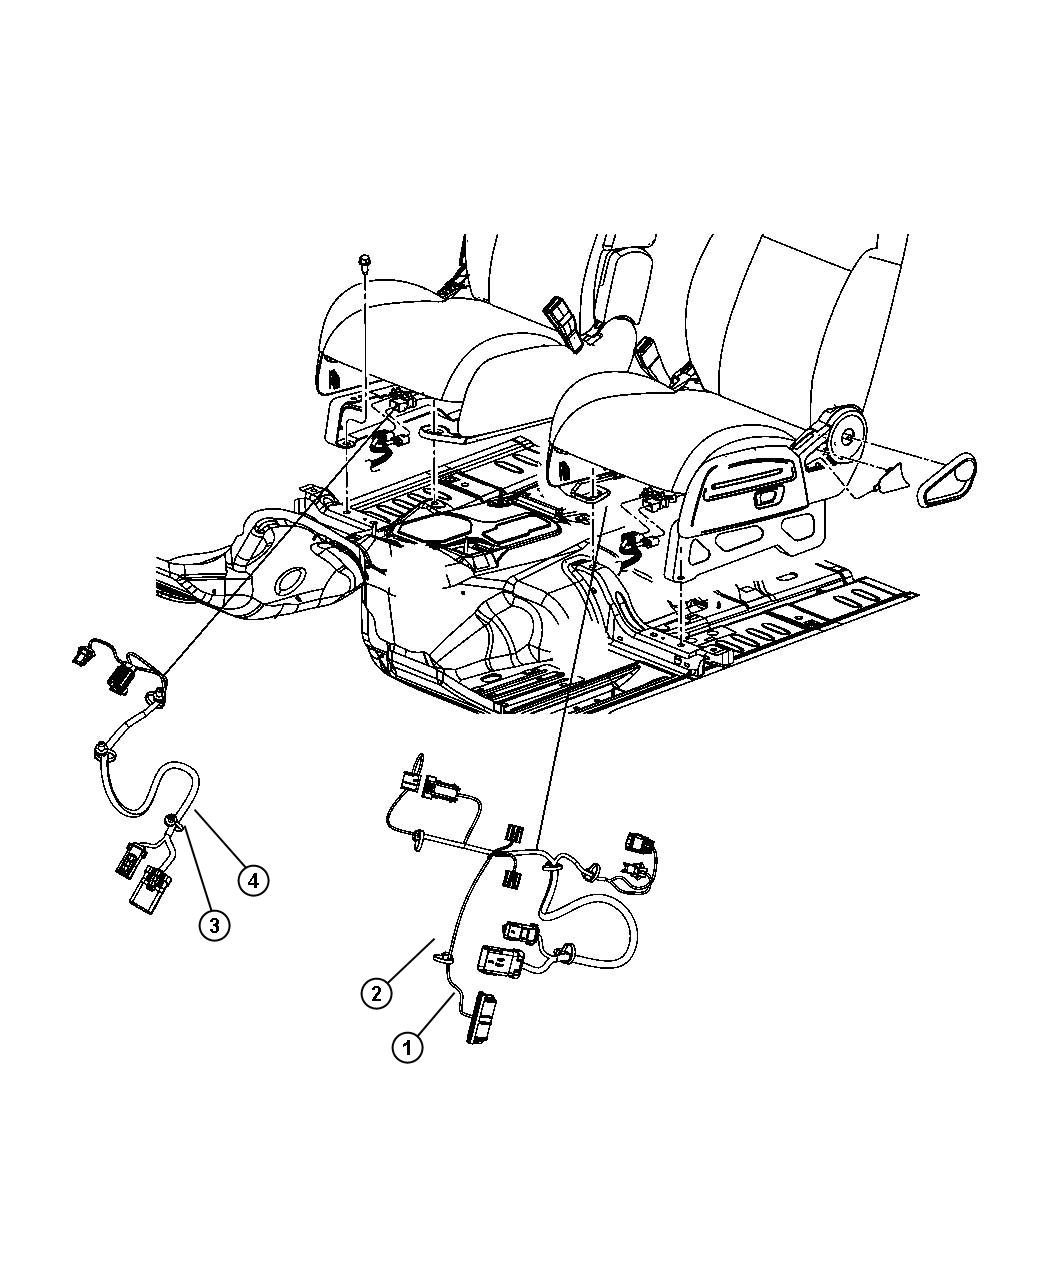 Jeep Liberty Wiring. Seat. Export. Manual. Trim: [cloth